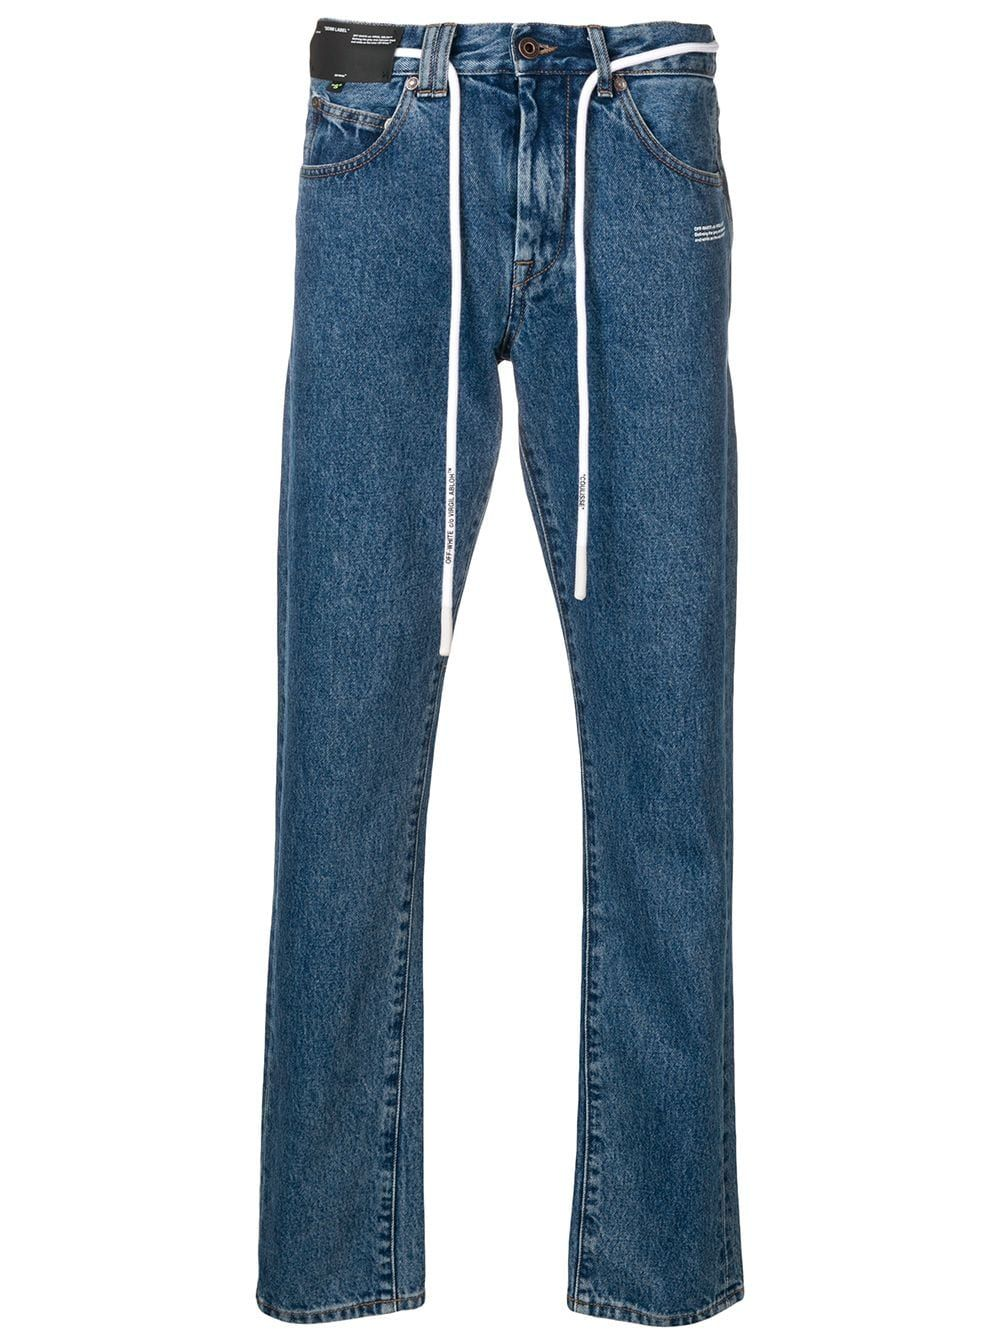 a3d31e0f Off-White slim-fit jeans - Blue in 2019 | Products | Off white ...